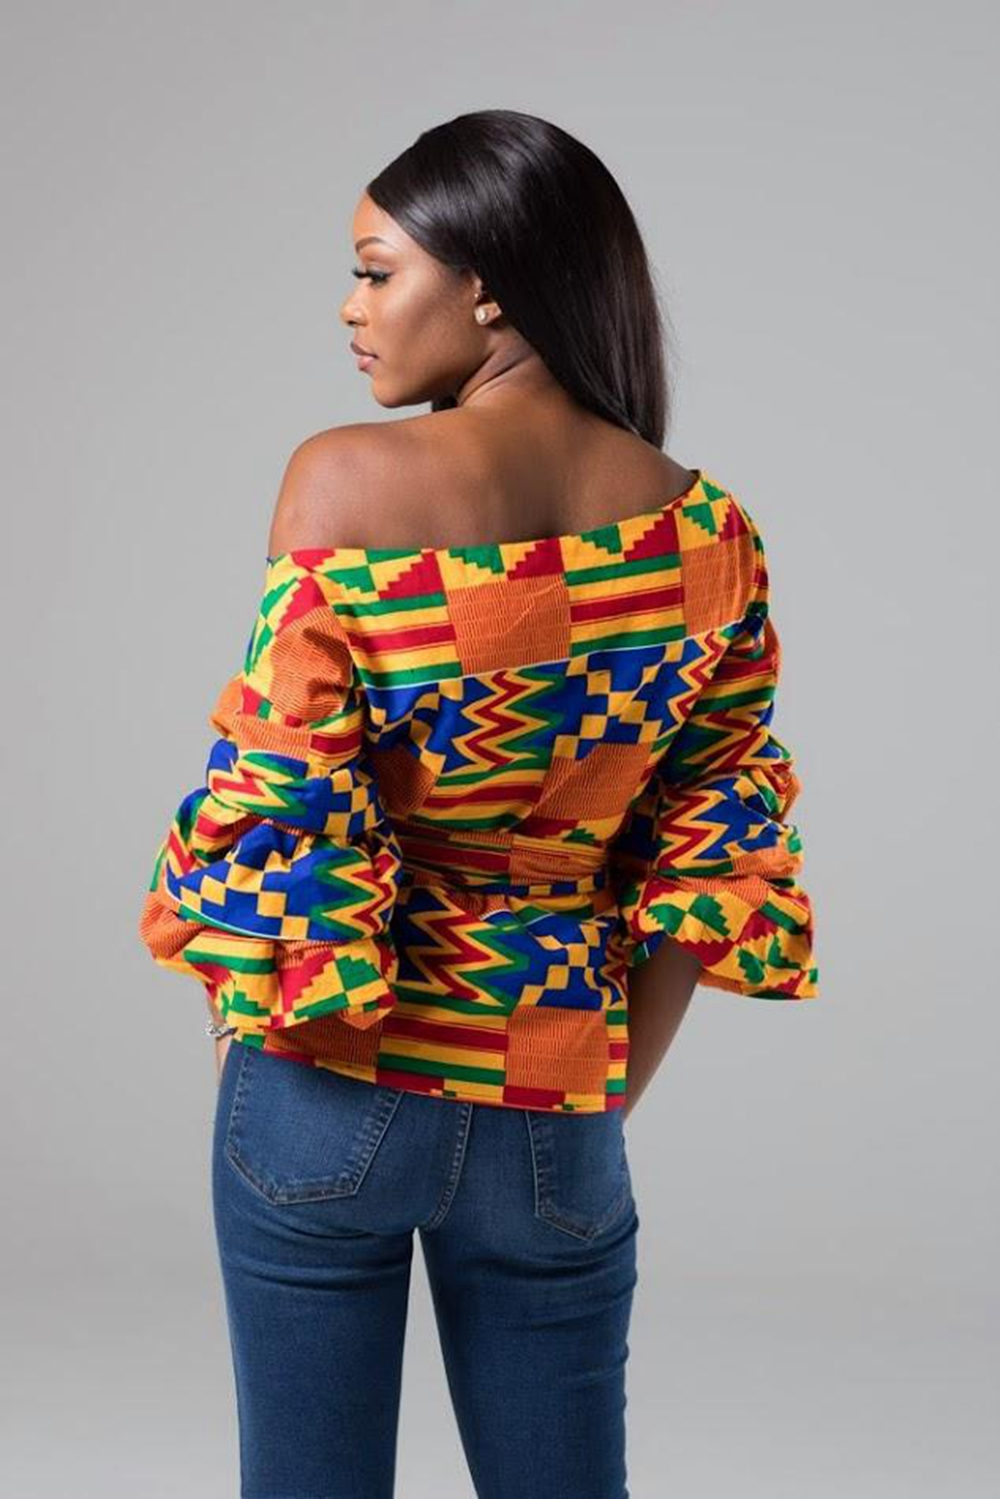 African Shirt Dresses For Woman Fashion Off Shoulder Summer African Blouse Tops For Office Lady Africa Bazin Dashiki Clothes